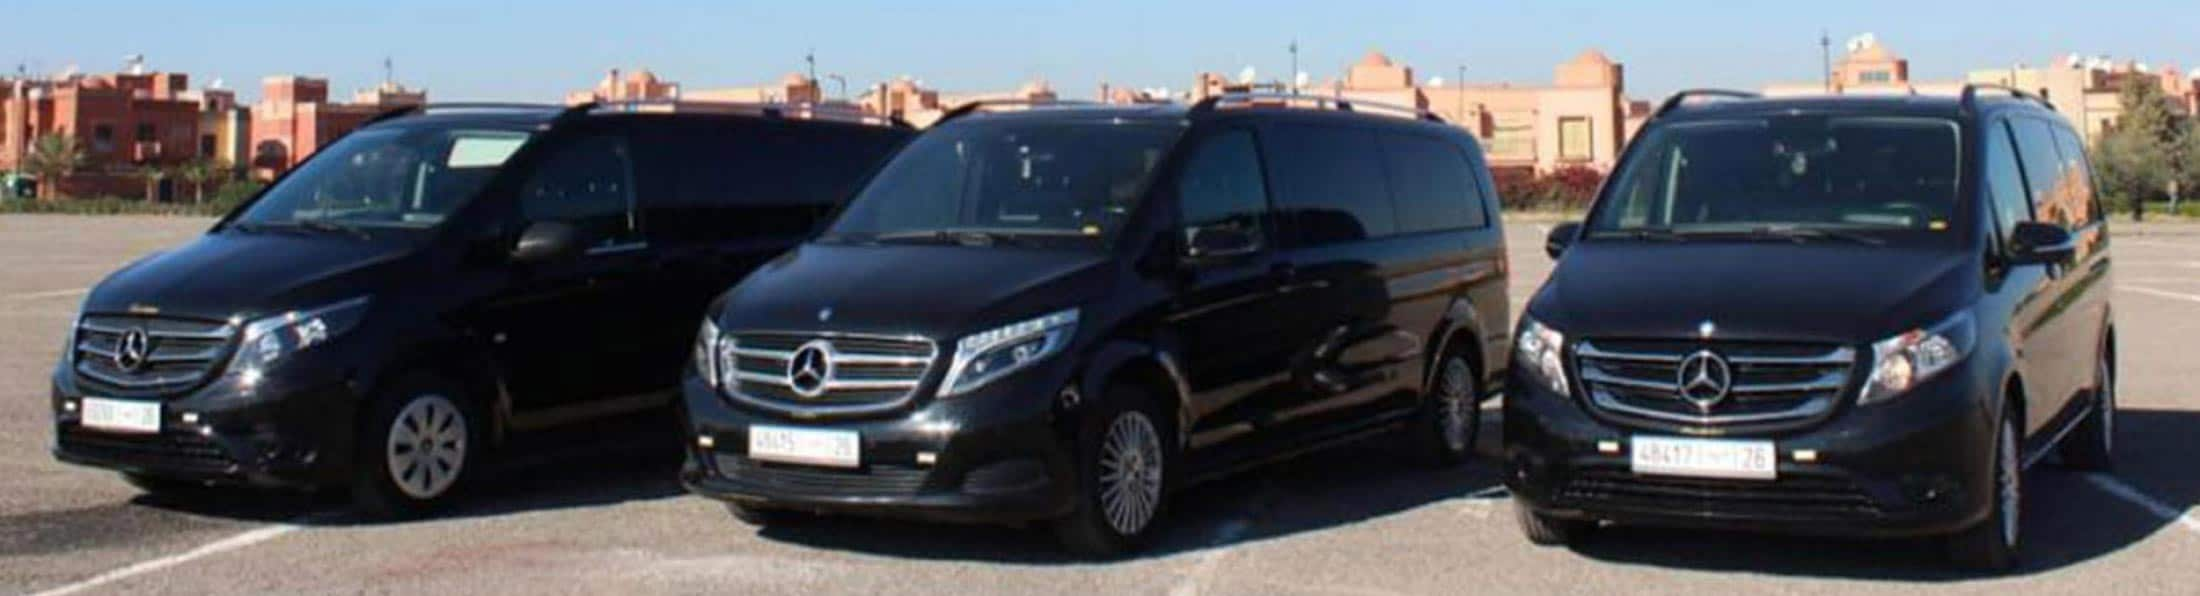 Morocco Airport Transfers Taxi & shuttles